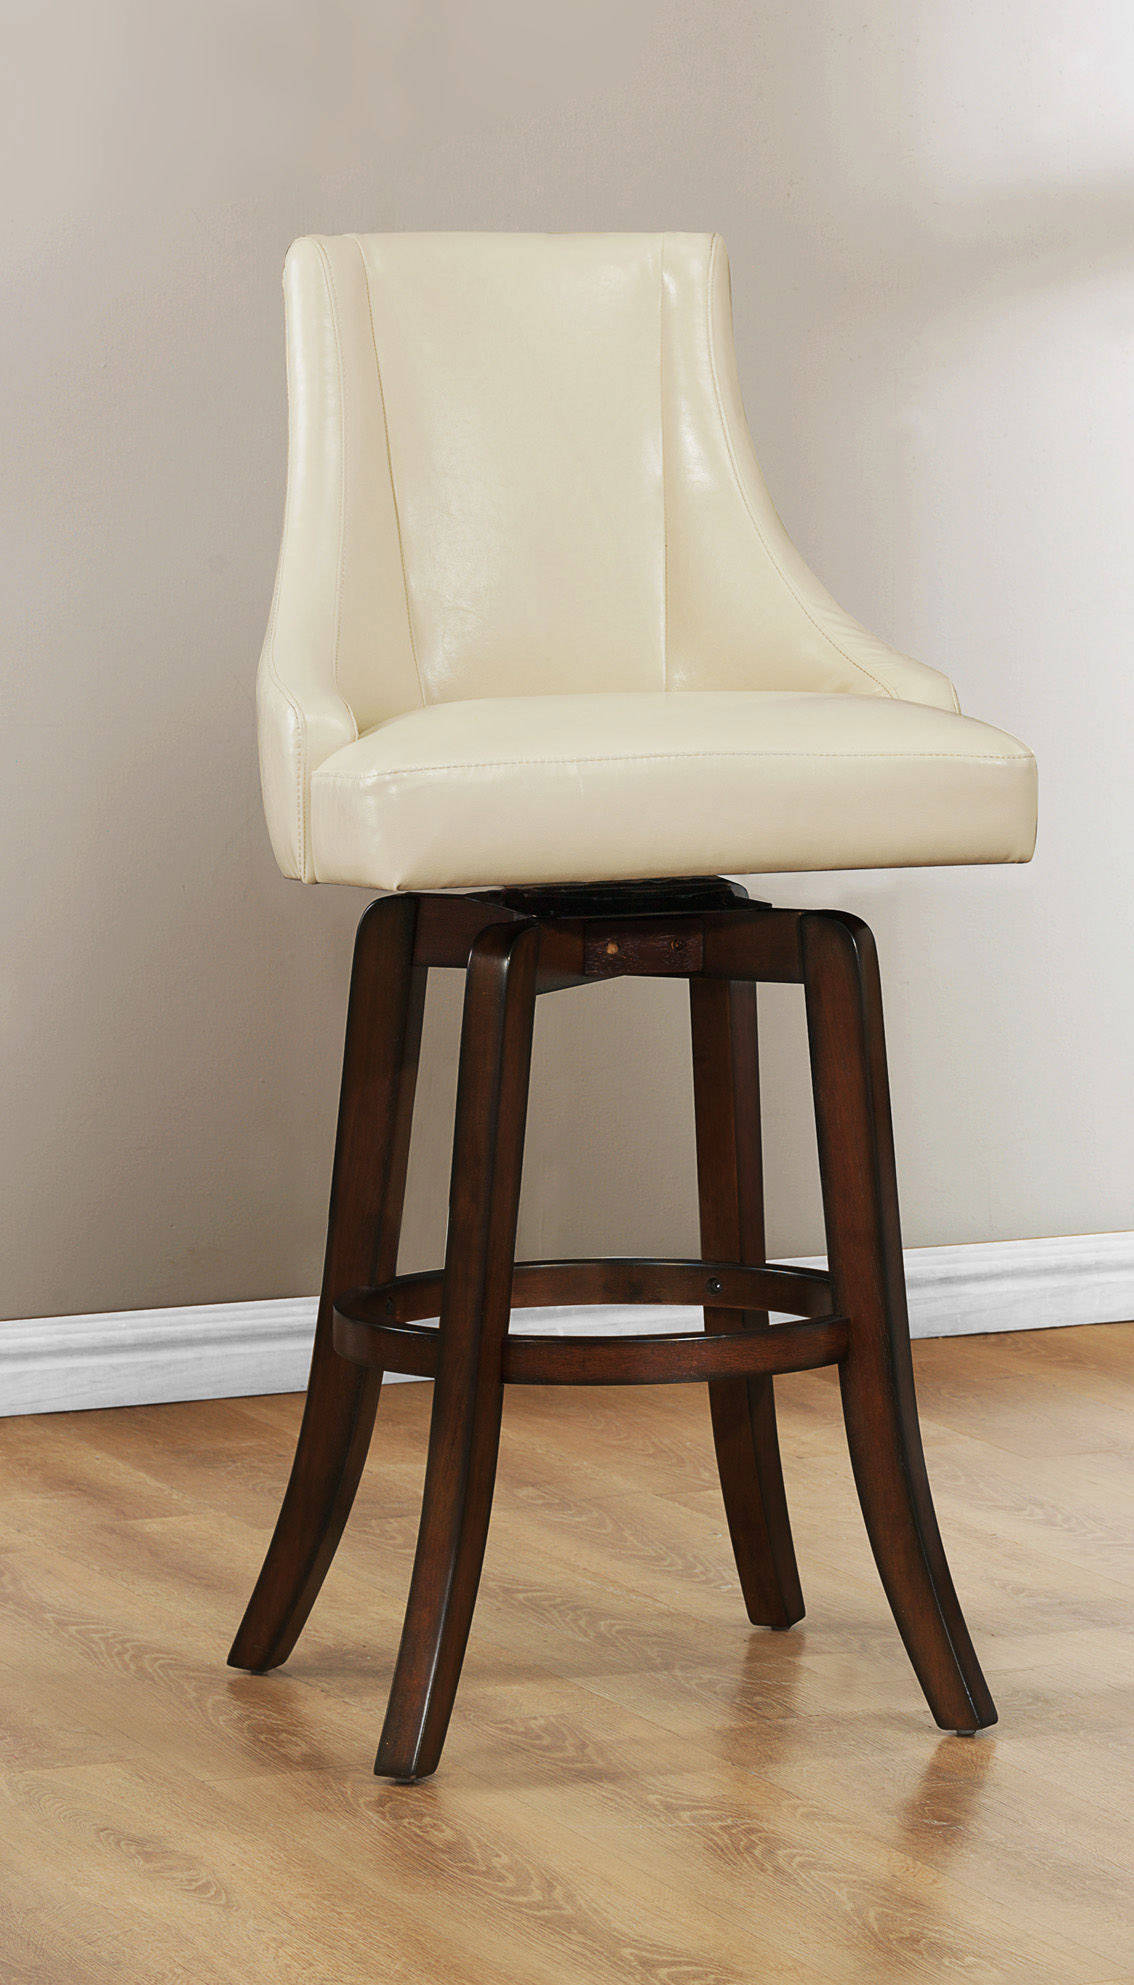 2 home elegance annabelle cream pub stools the classy home for Annabelle chaise